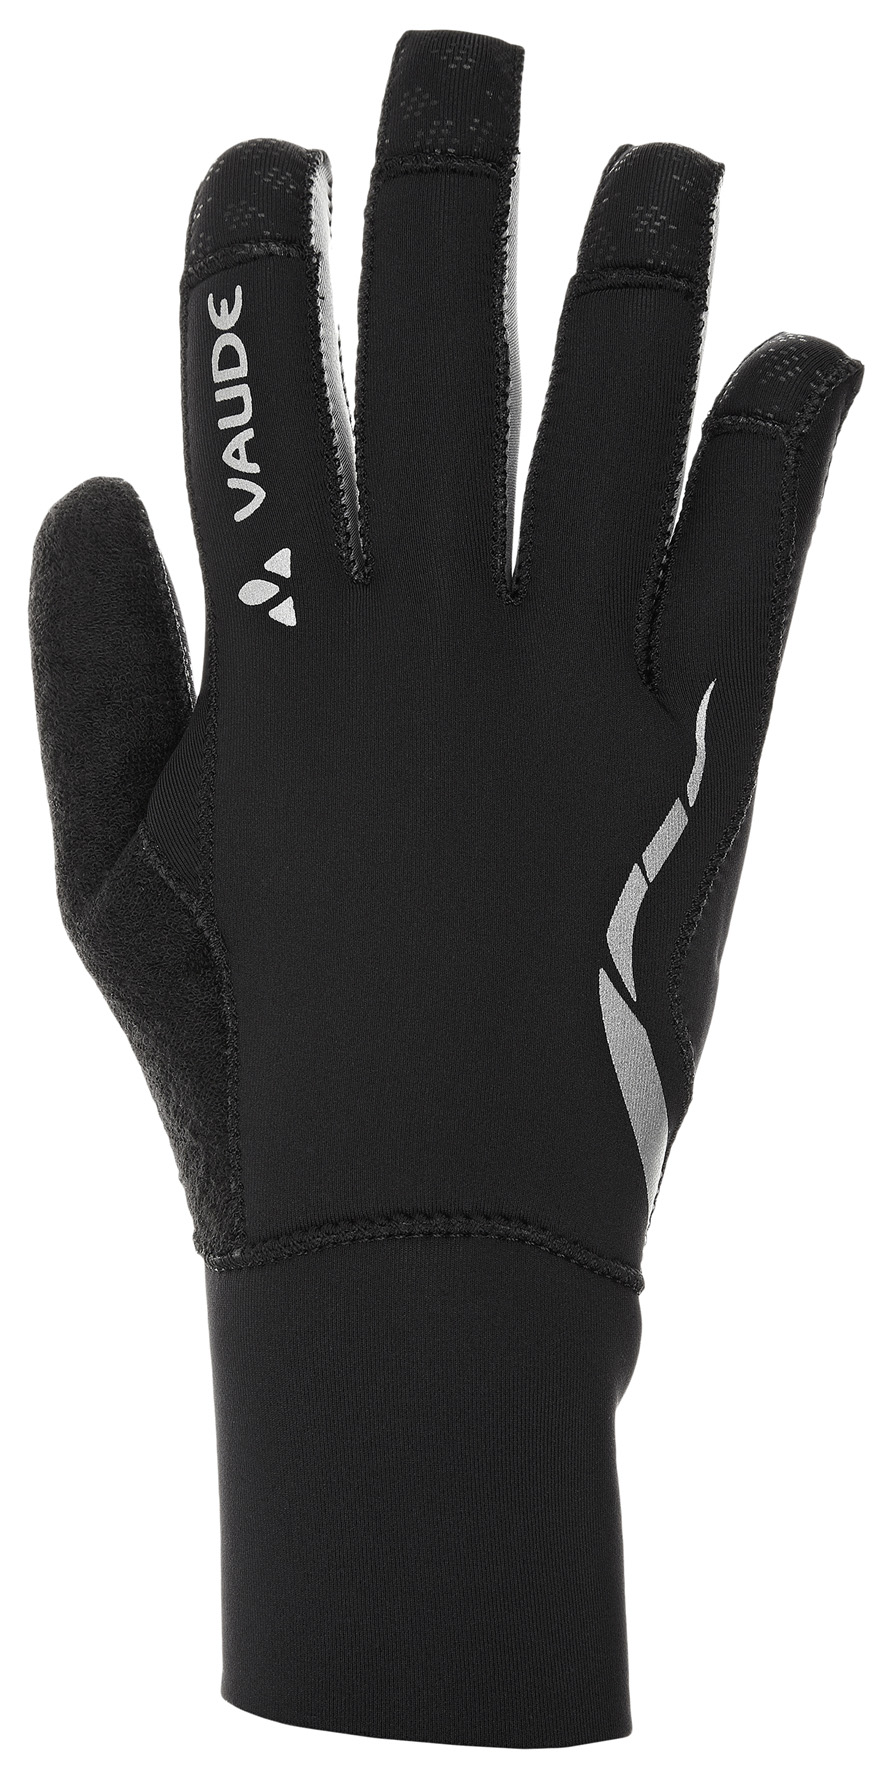 VAUDE Chronos Gloves black Größe 10 - schneider-sports